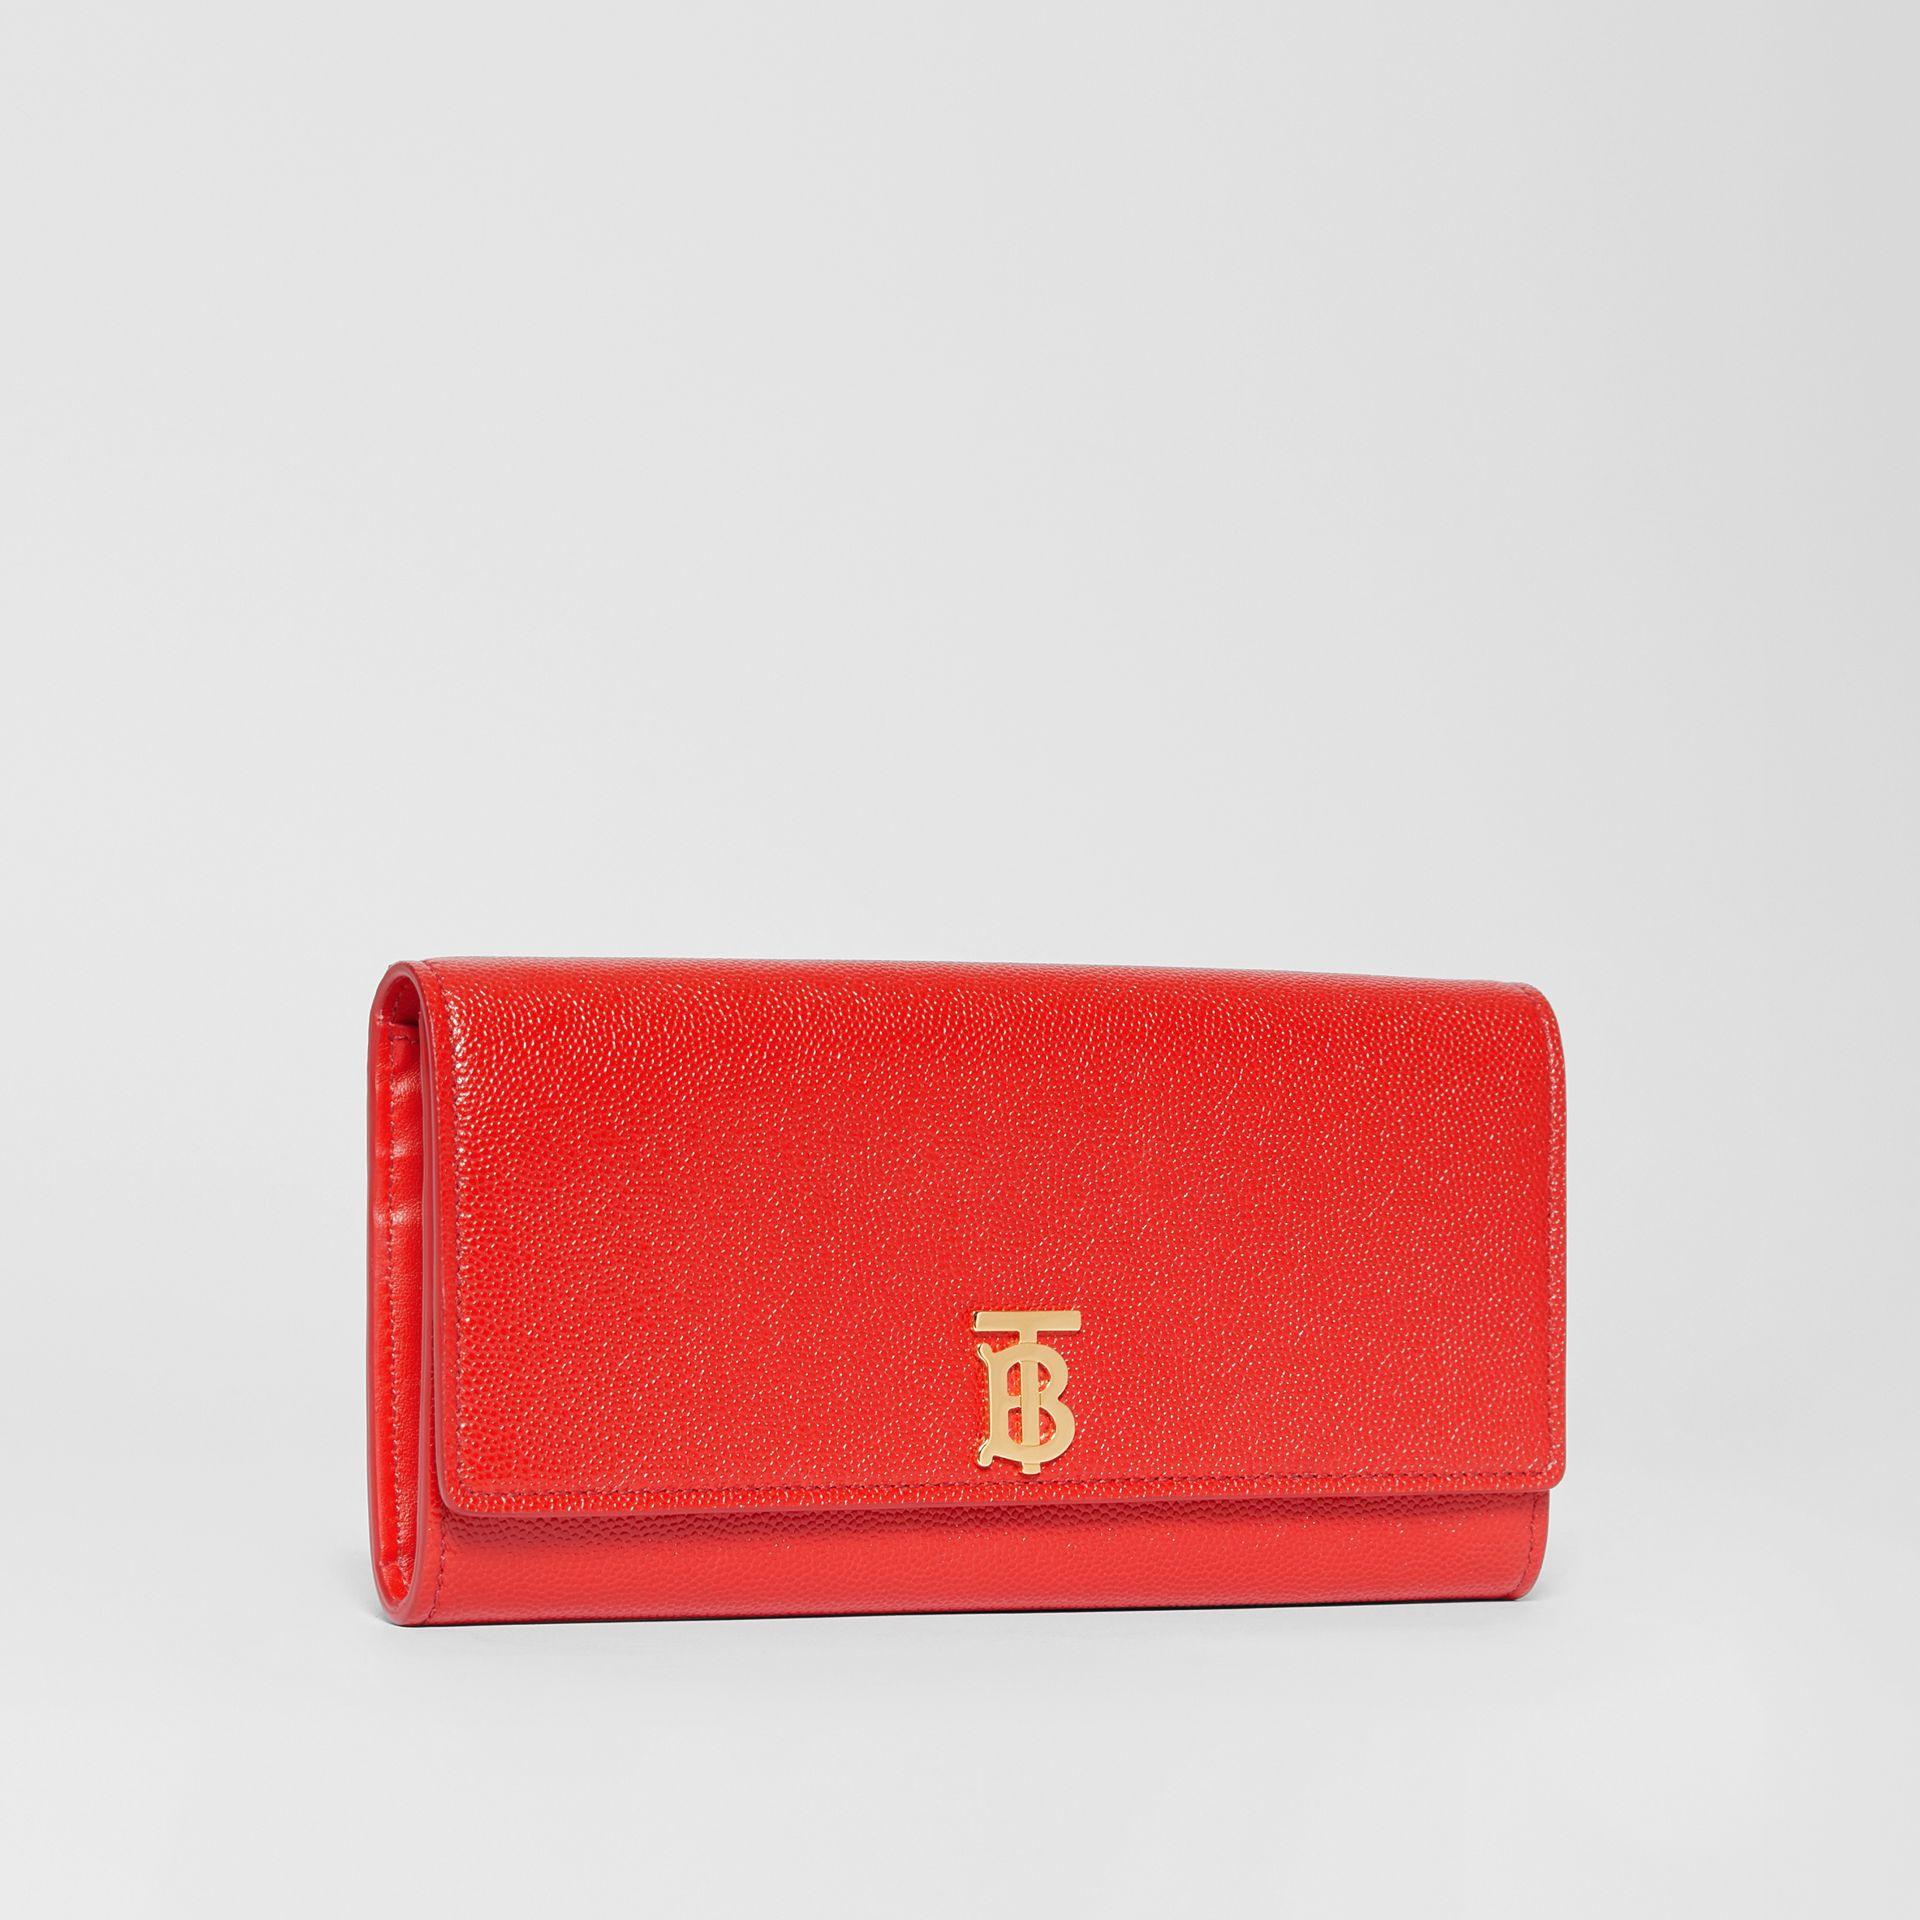 Monogram Motif Grainy Leather Continental Wallet in Bright Red - Women | Burberry Canada - gallery image 4